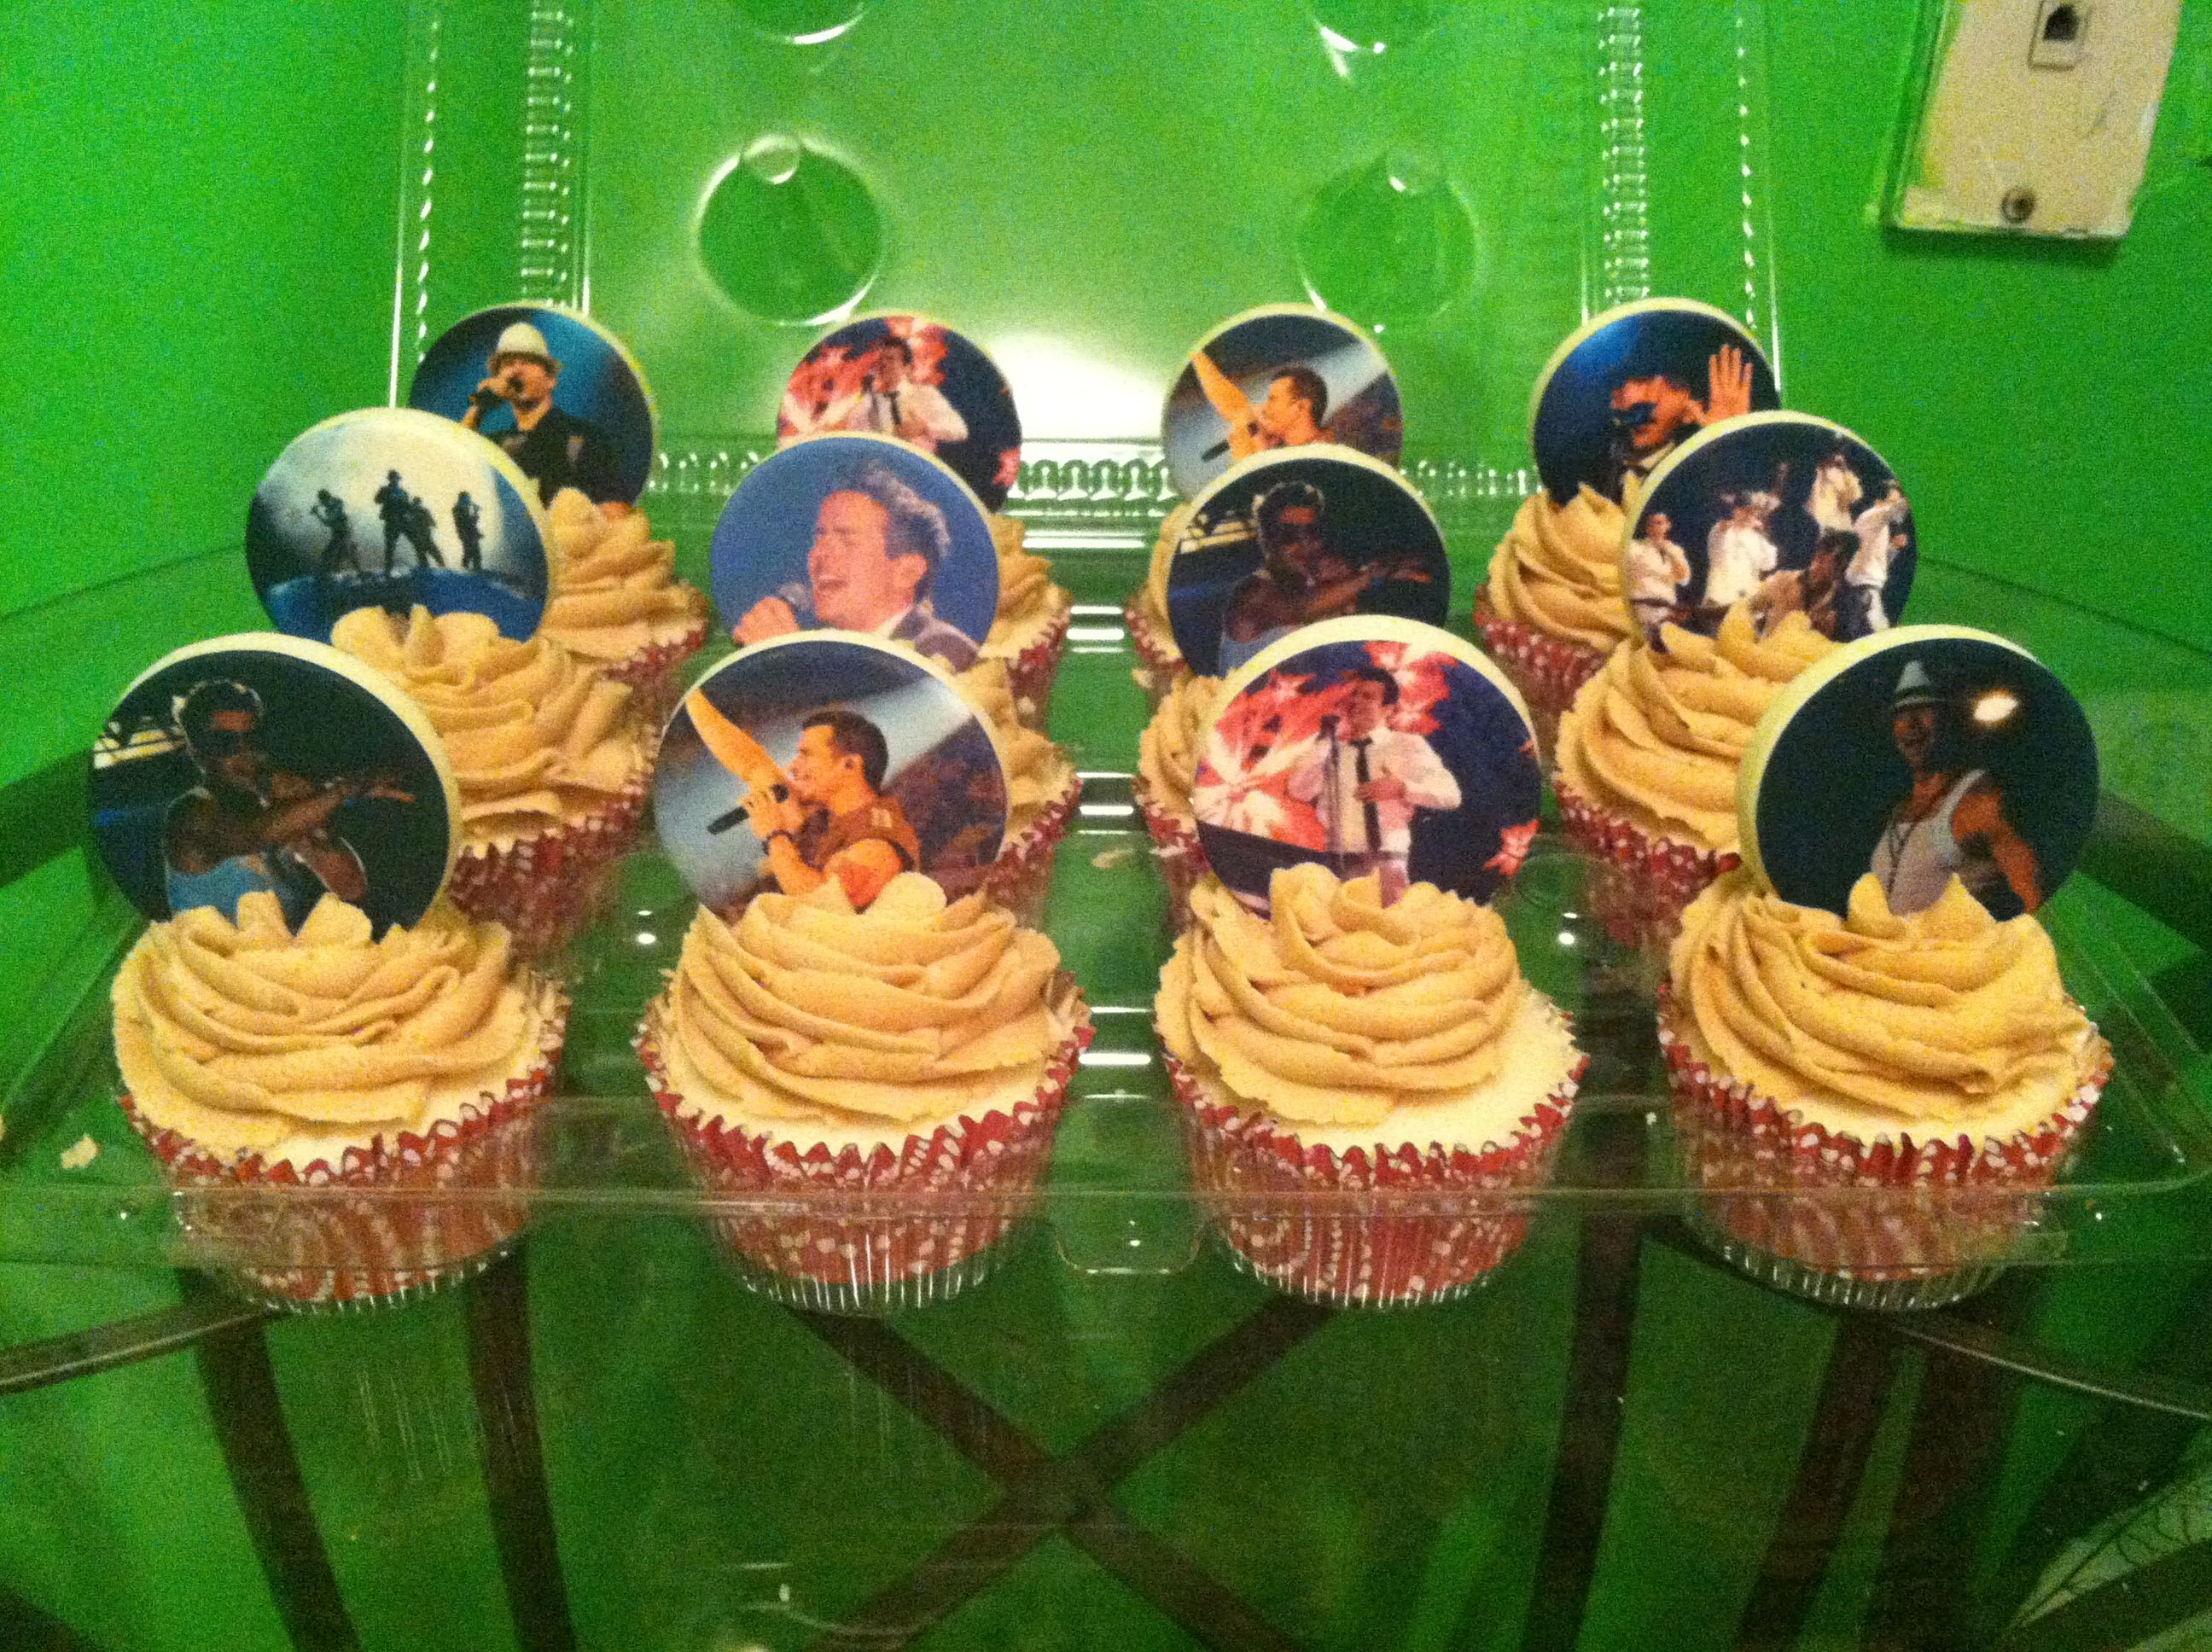 NKOTB New Kids on the Block cupcakes Edible image toppers on peanut